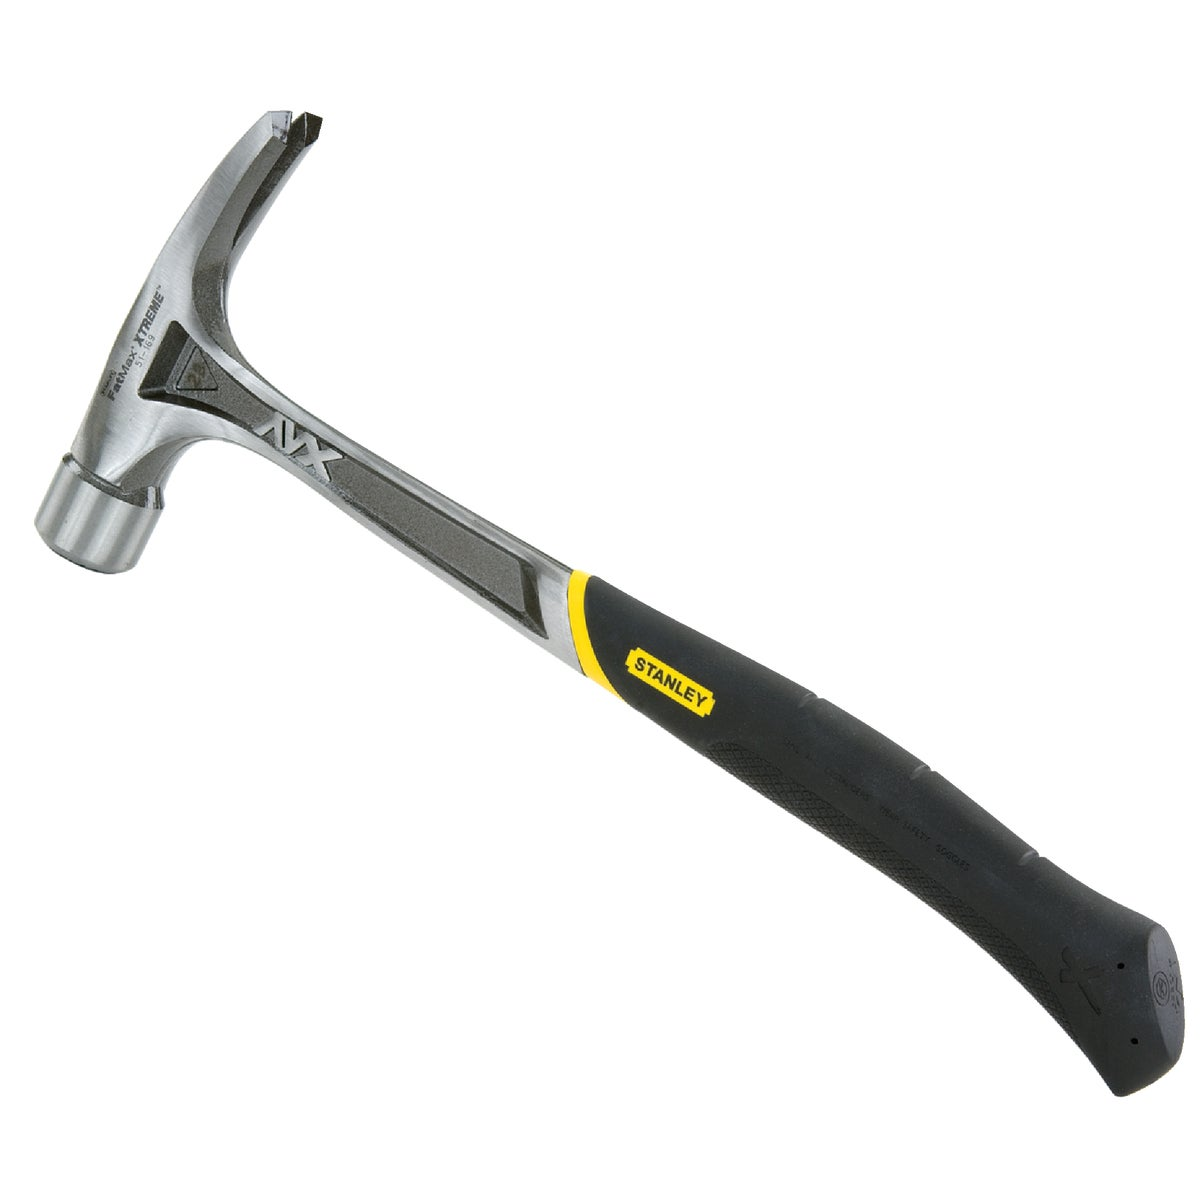 28OZ AVX FRAMING HAMMER - 51-169 by Stanley Tools